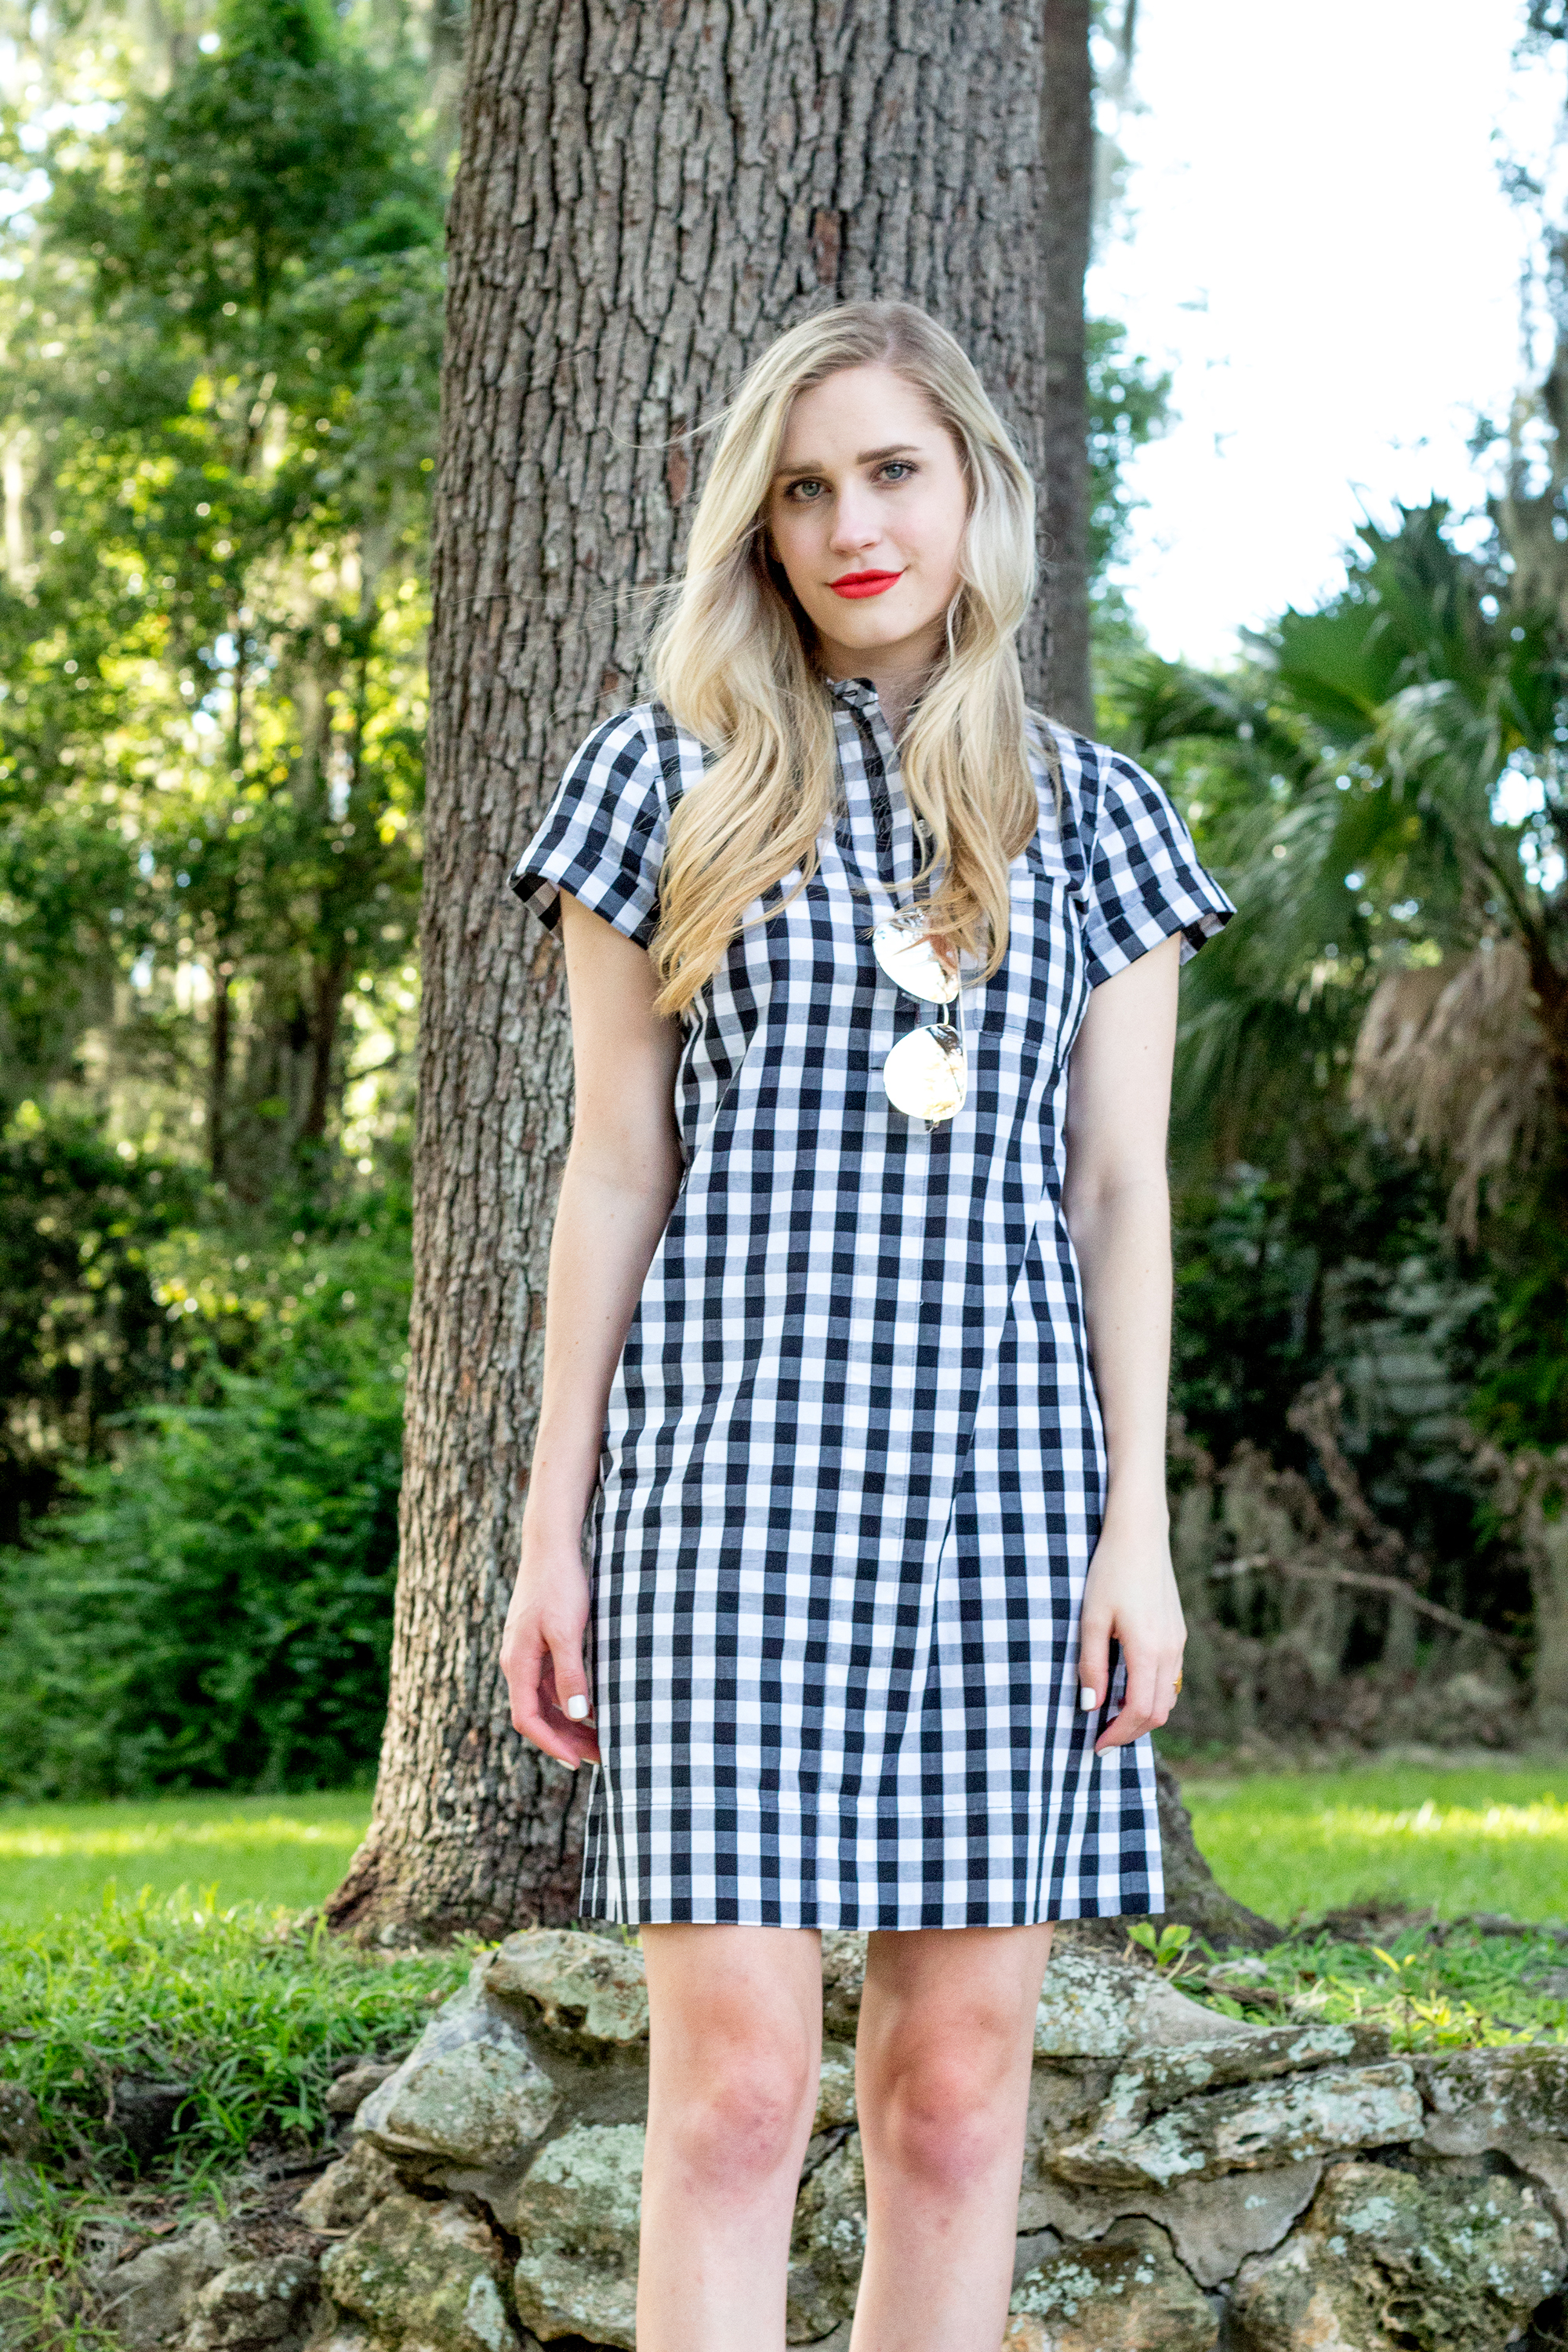 jcrew-j.crew-boxed-water-gingham-black-and-white-checkered-shirtdress-shirt-dress-ootd-styelled-elle-elisabeth-fashion-style-blogger-wiw-adidas-superstar-quay-australia-desi-perkins-01